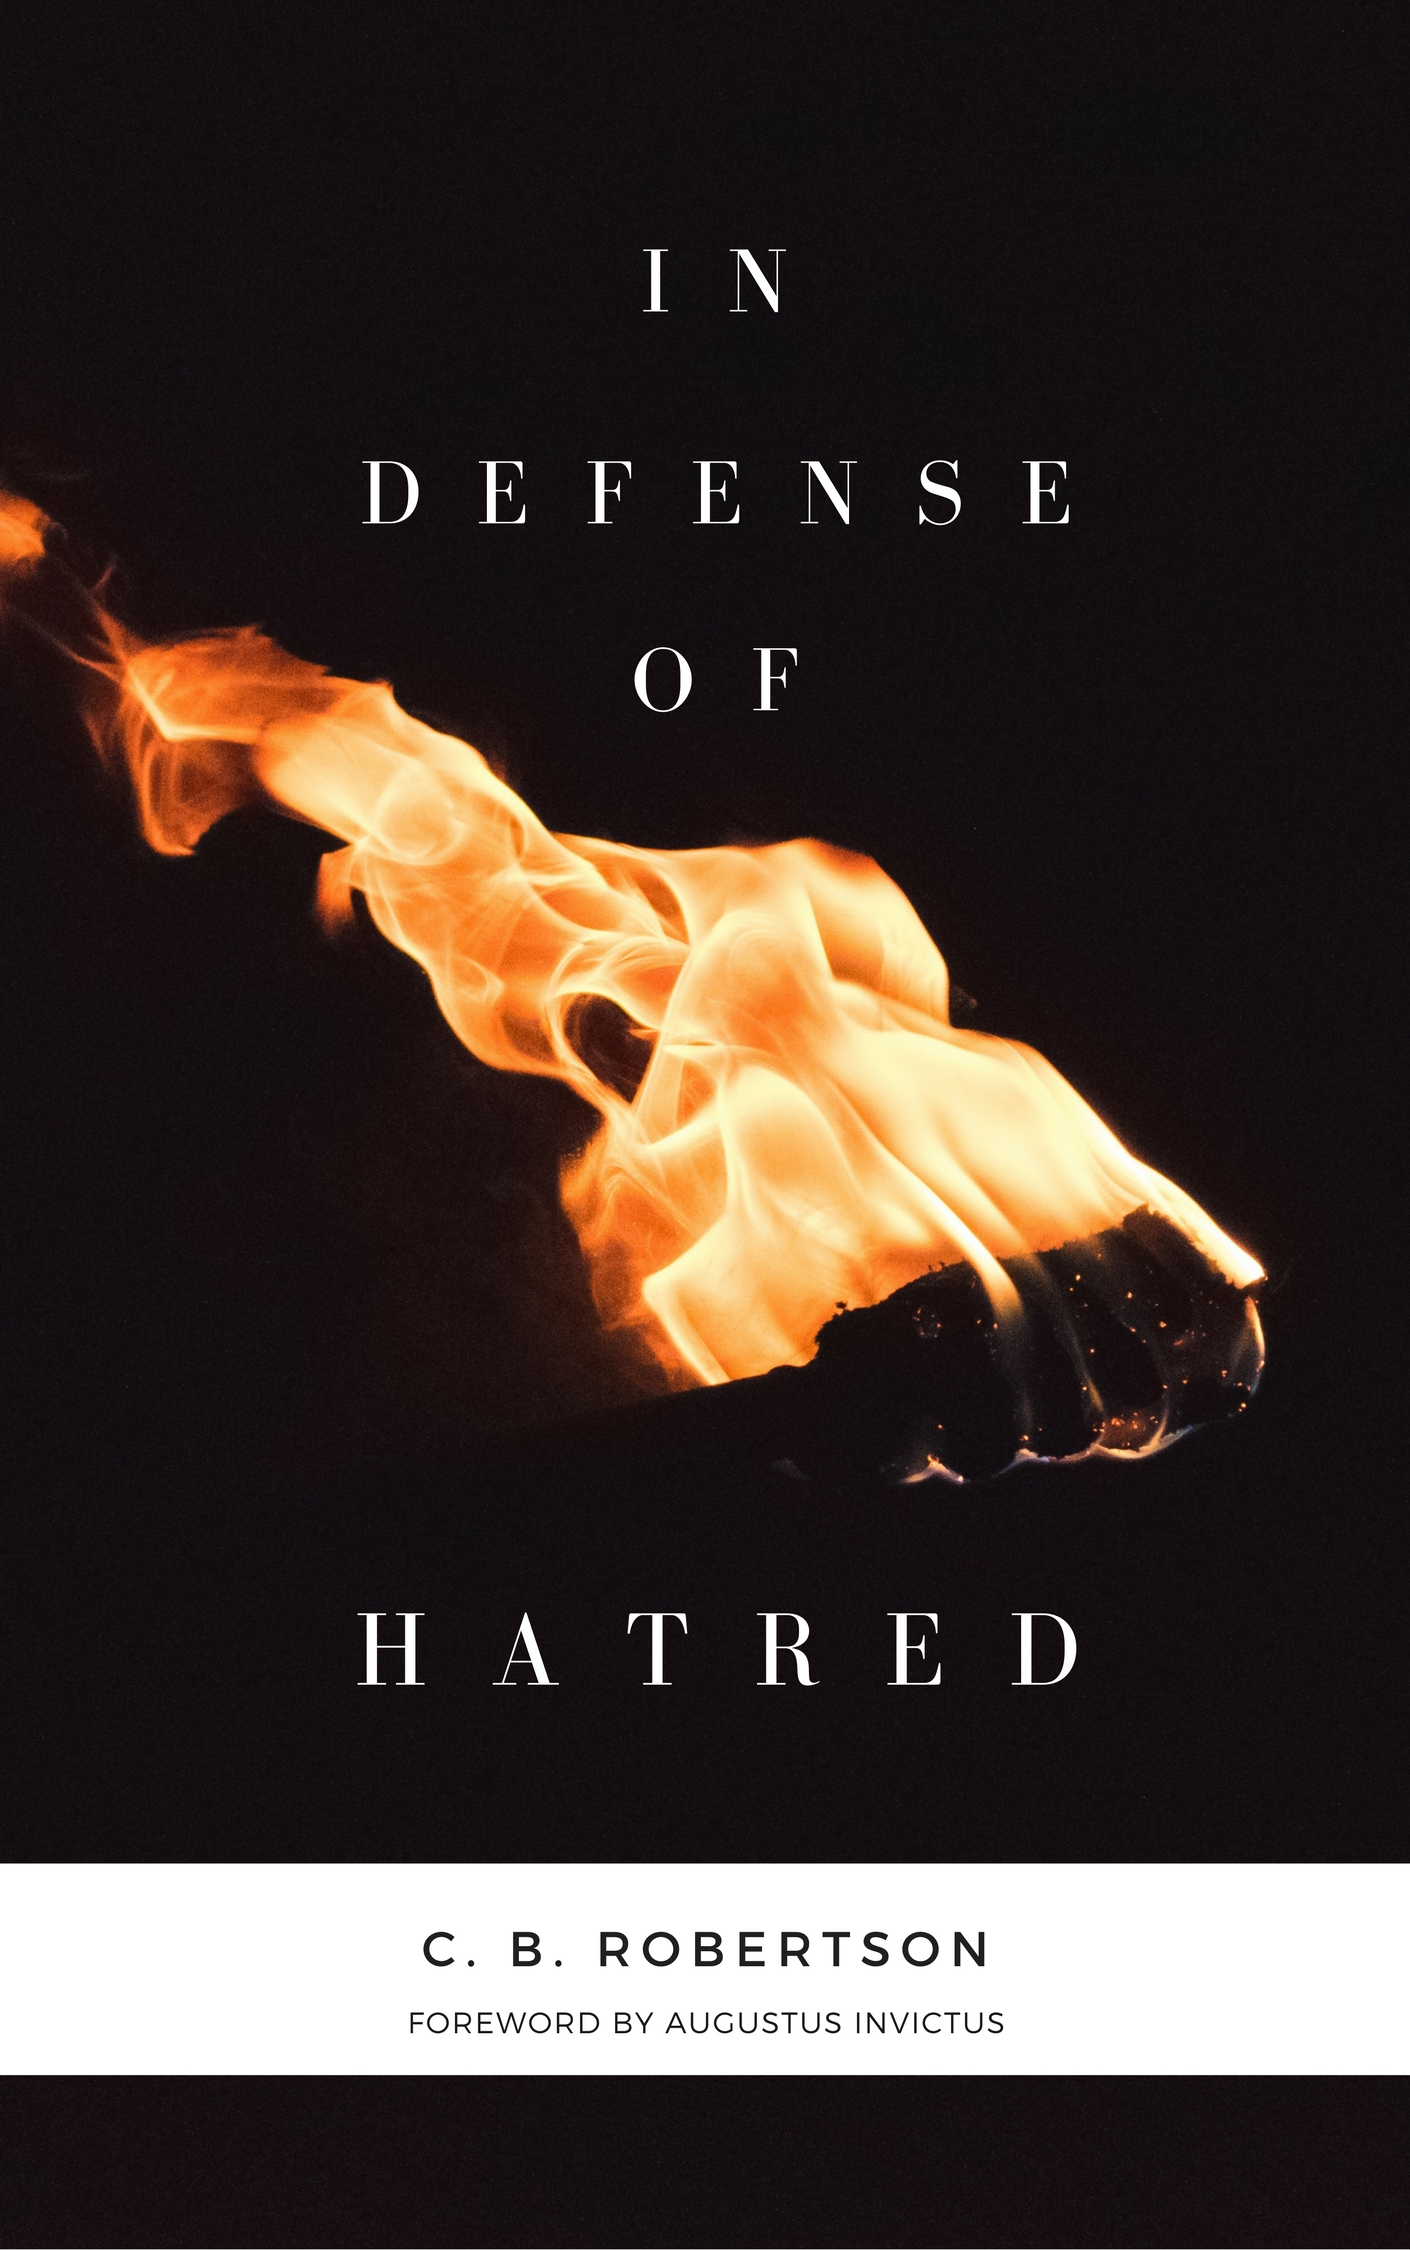 In Defense of Hatred